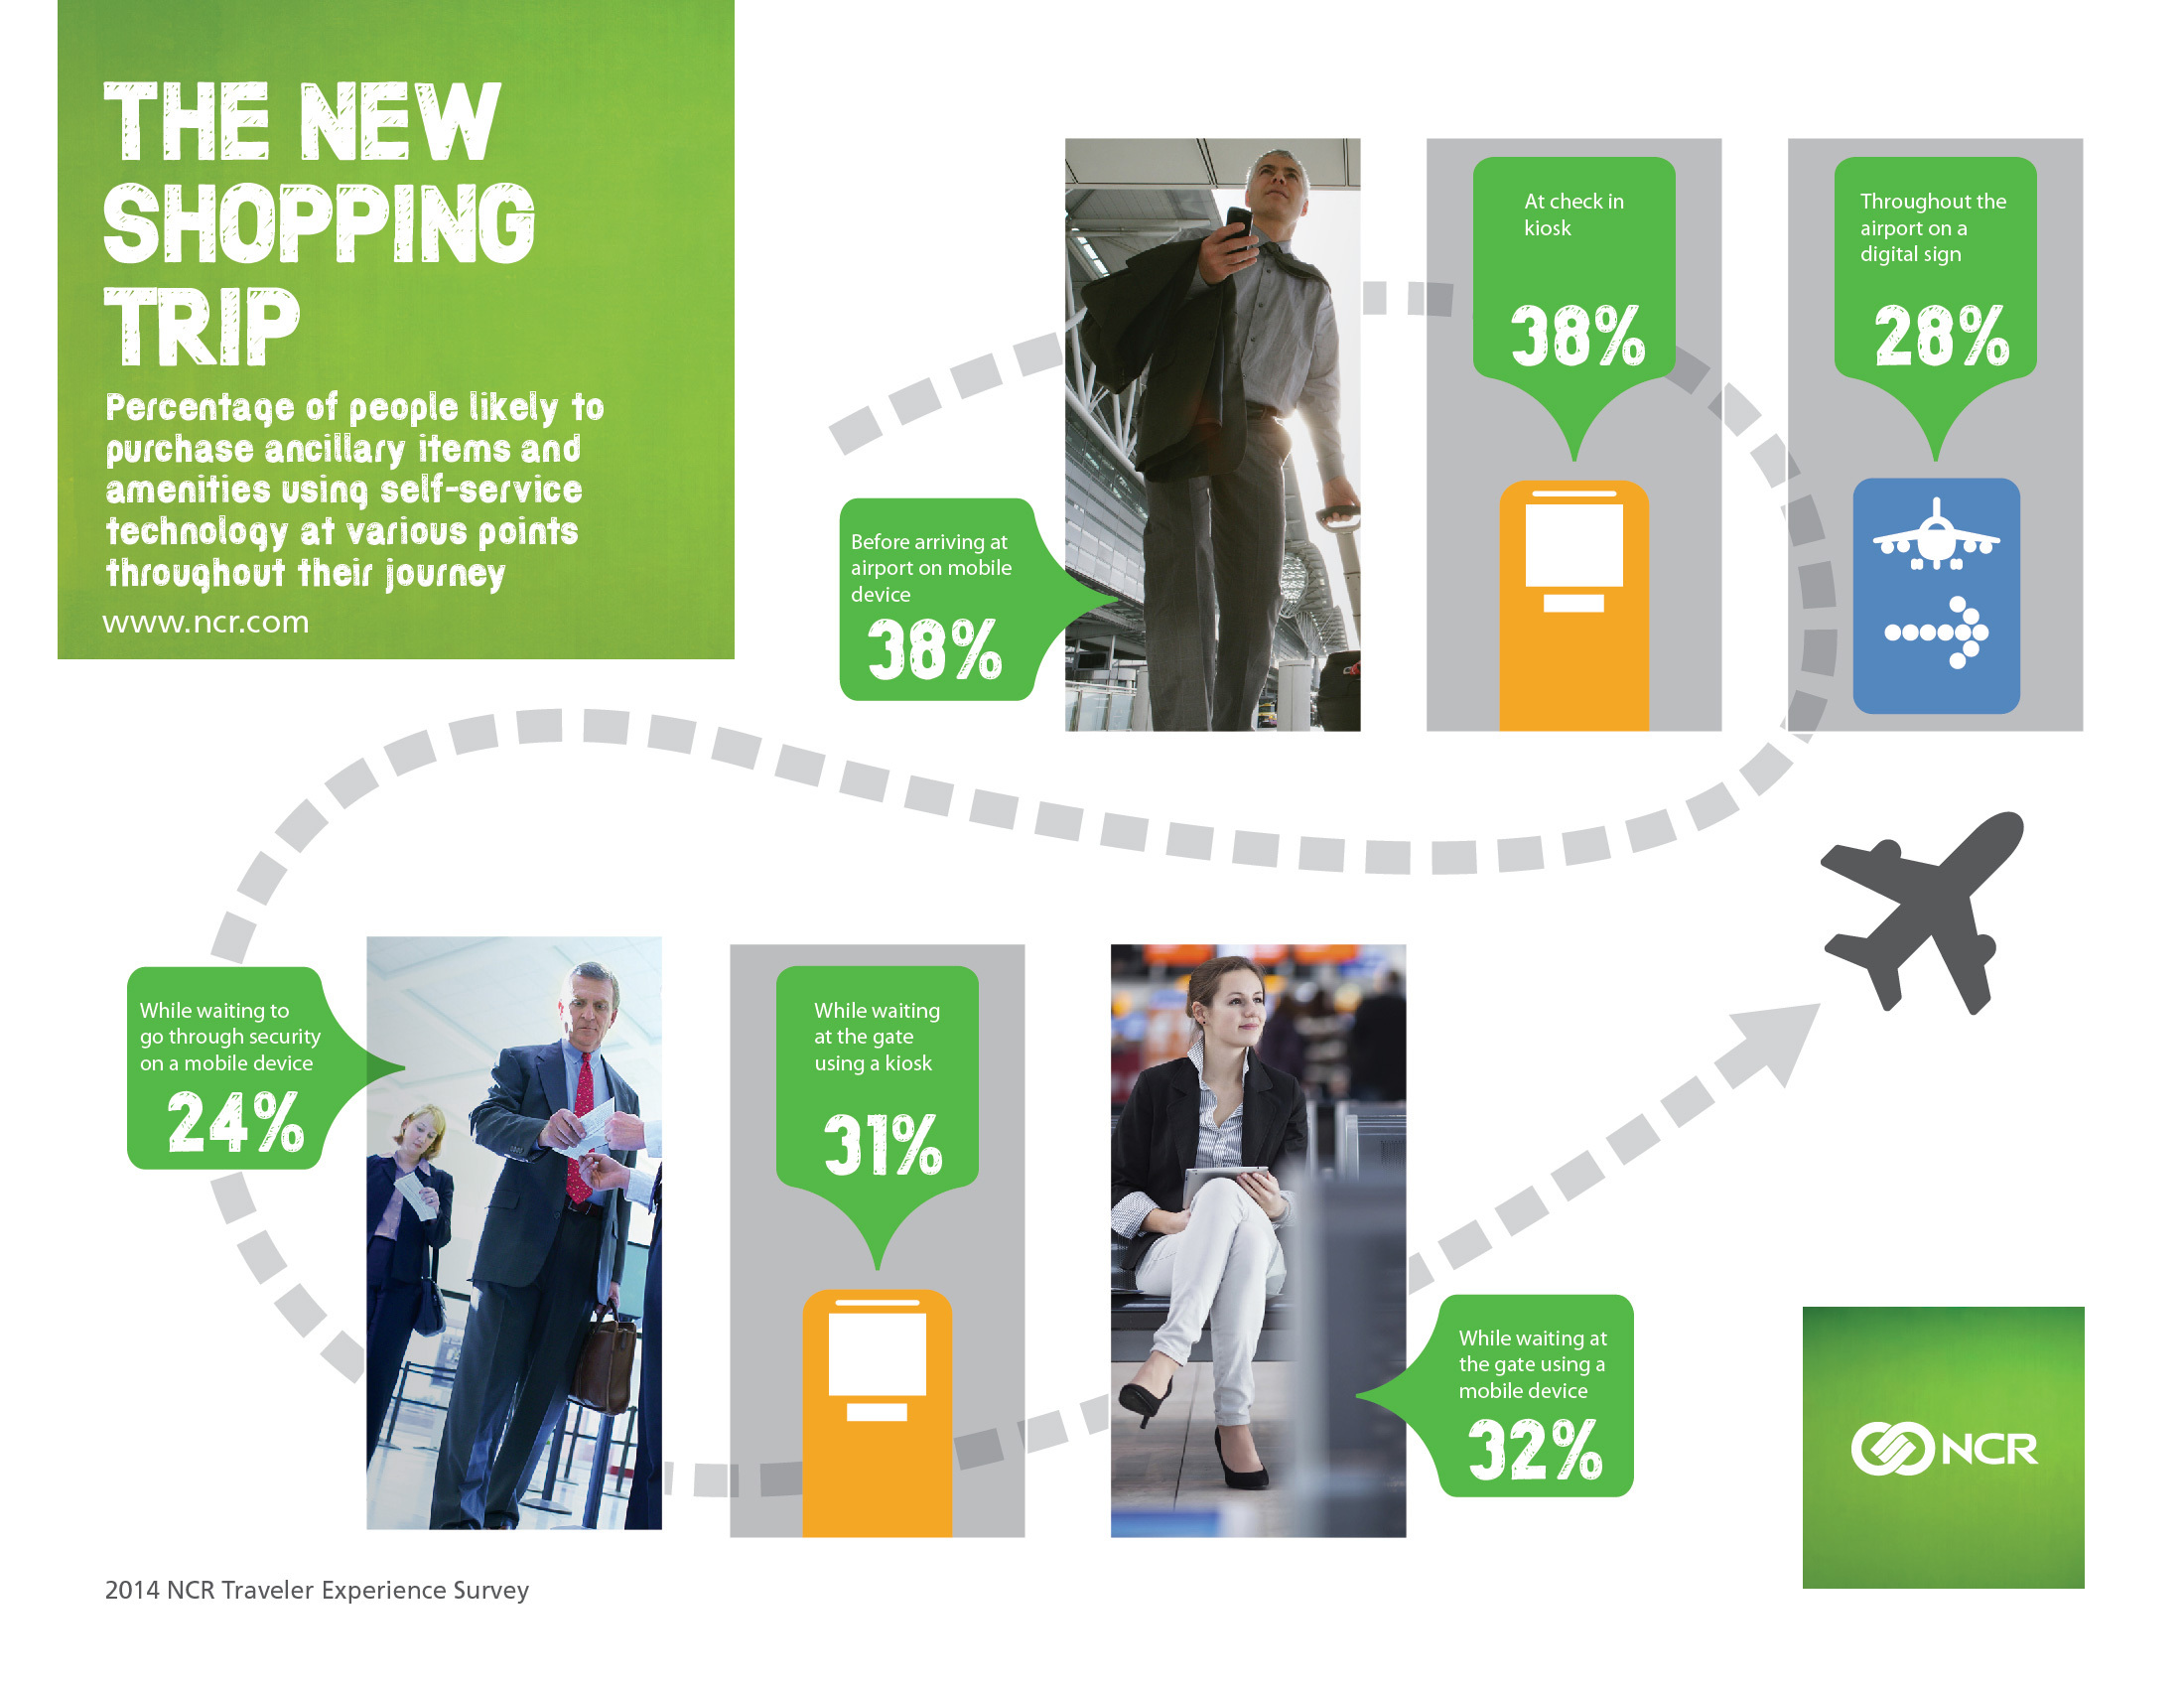 Percentage of people likely to make purchases using self-service technology at various points in their air travel trips. (Graphic: Business Wire)